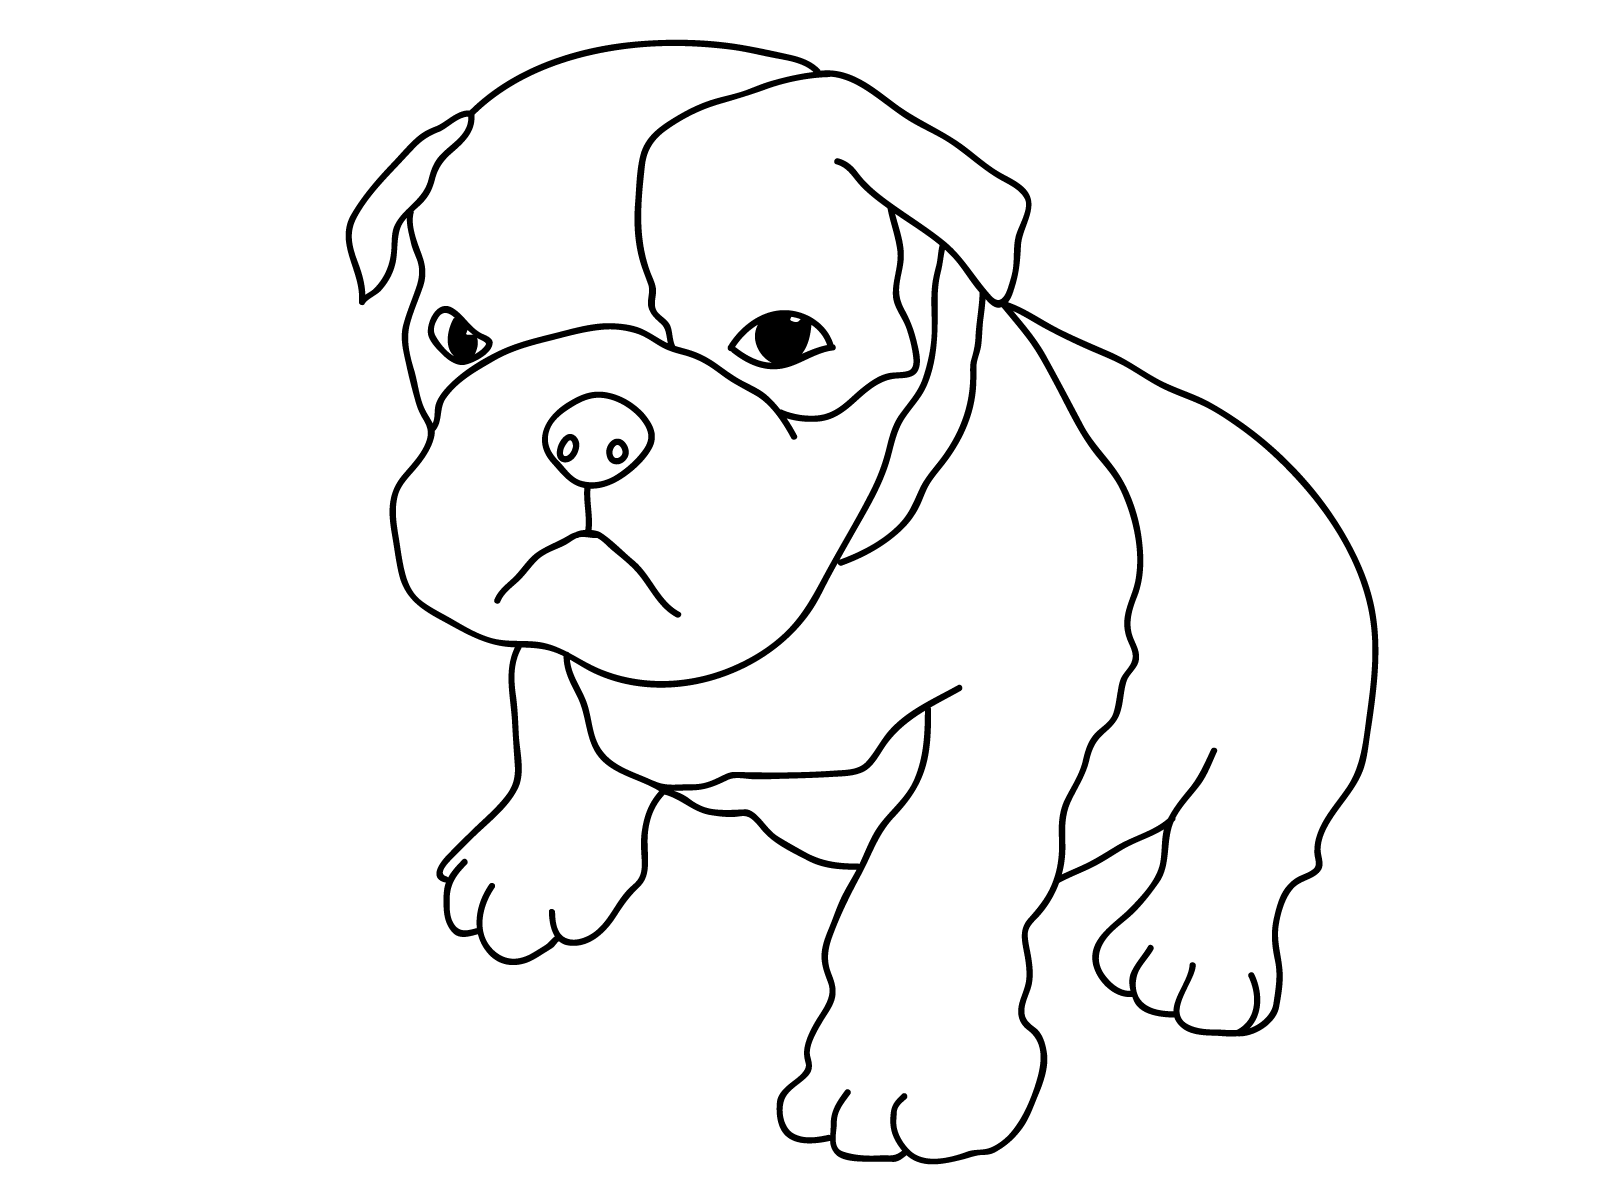 Free Printable Dog Coloring Pages For Kids Colouring Pages Of Puppies